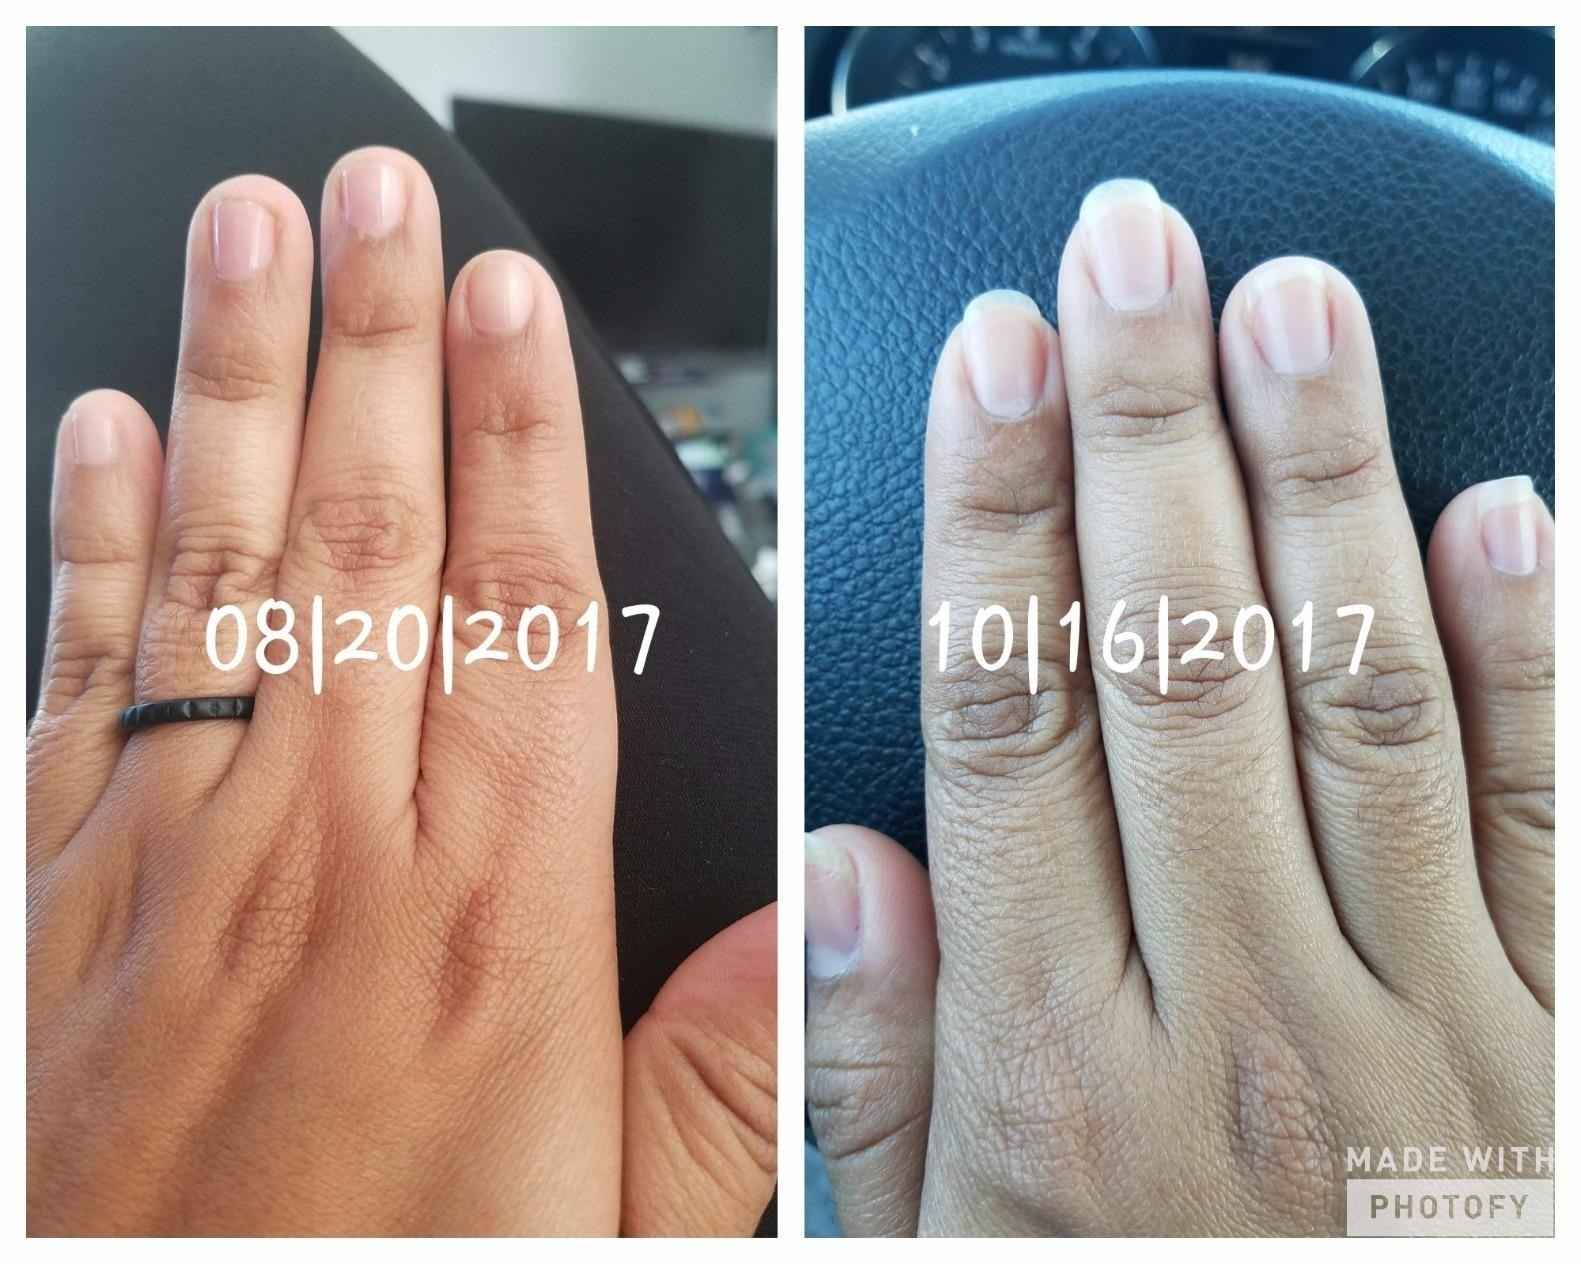 Left: A reviewer's hand with bitten-down short nails on 8/20/2017; right: the same hand with slightly grown-out nails on 10/16/2017